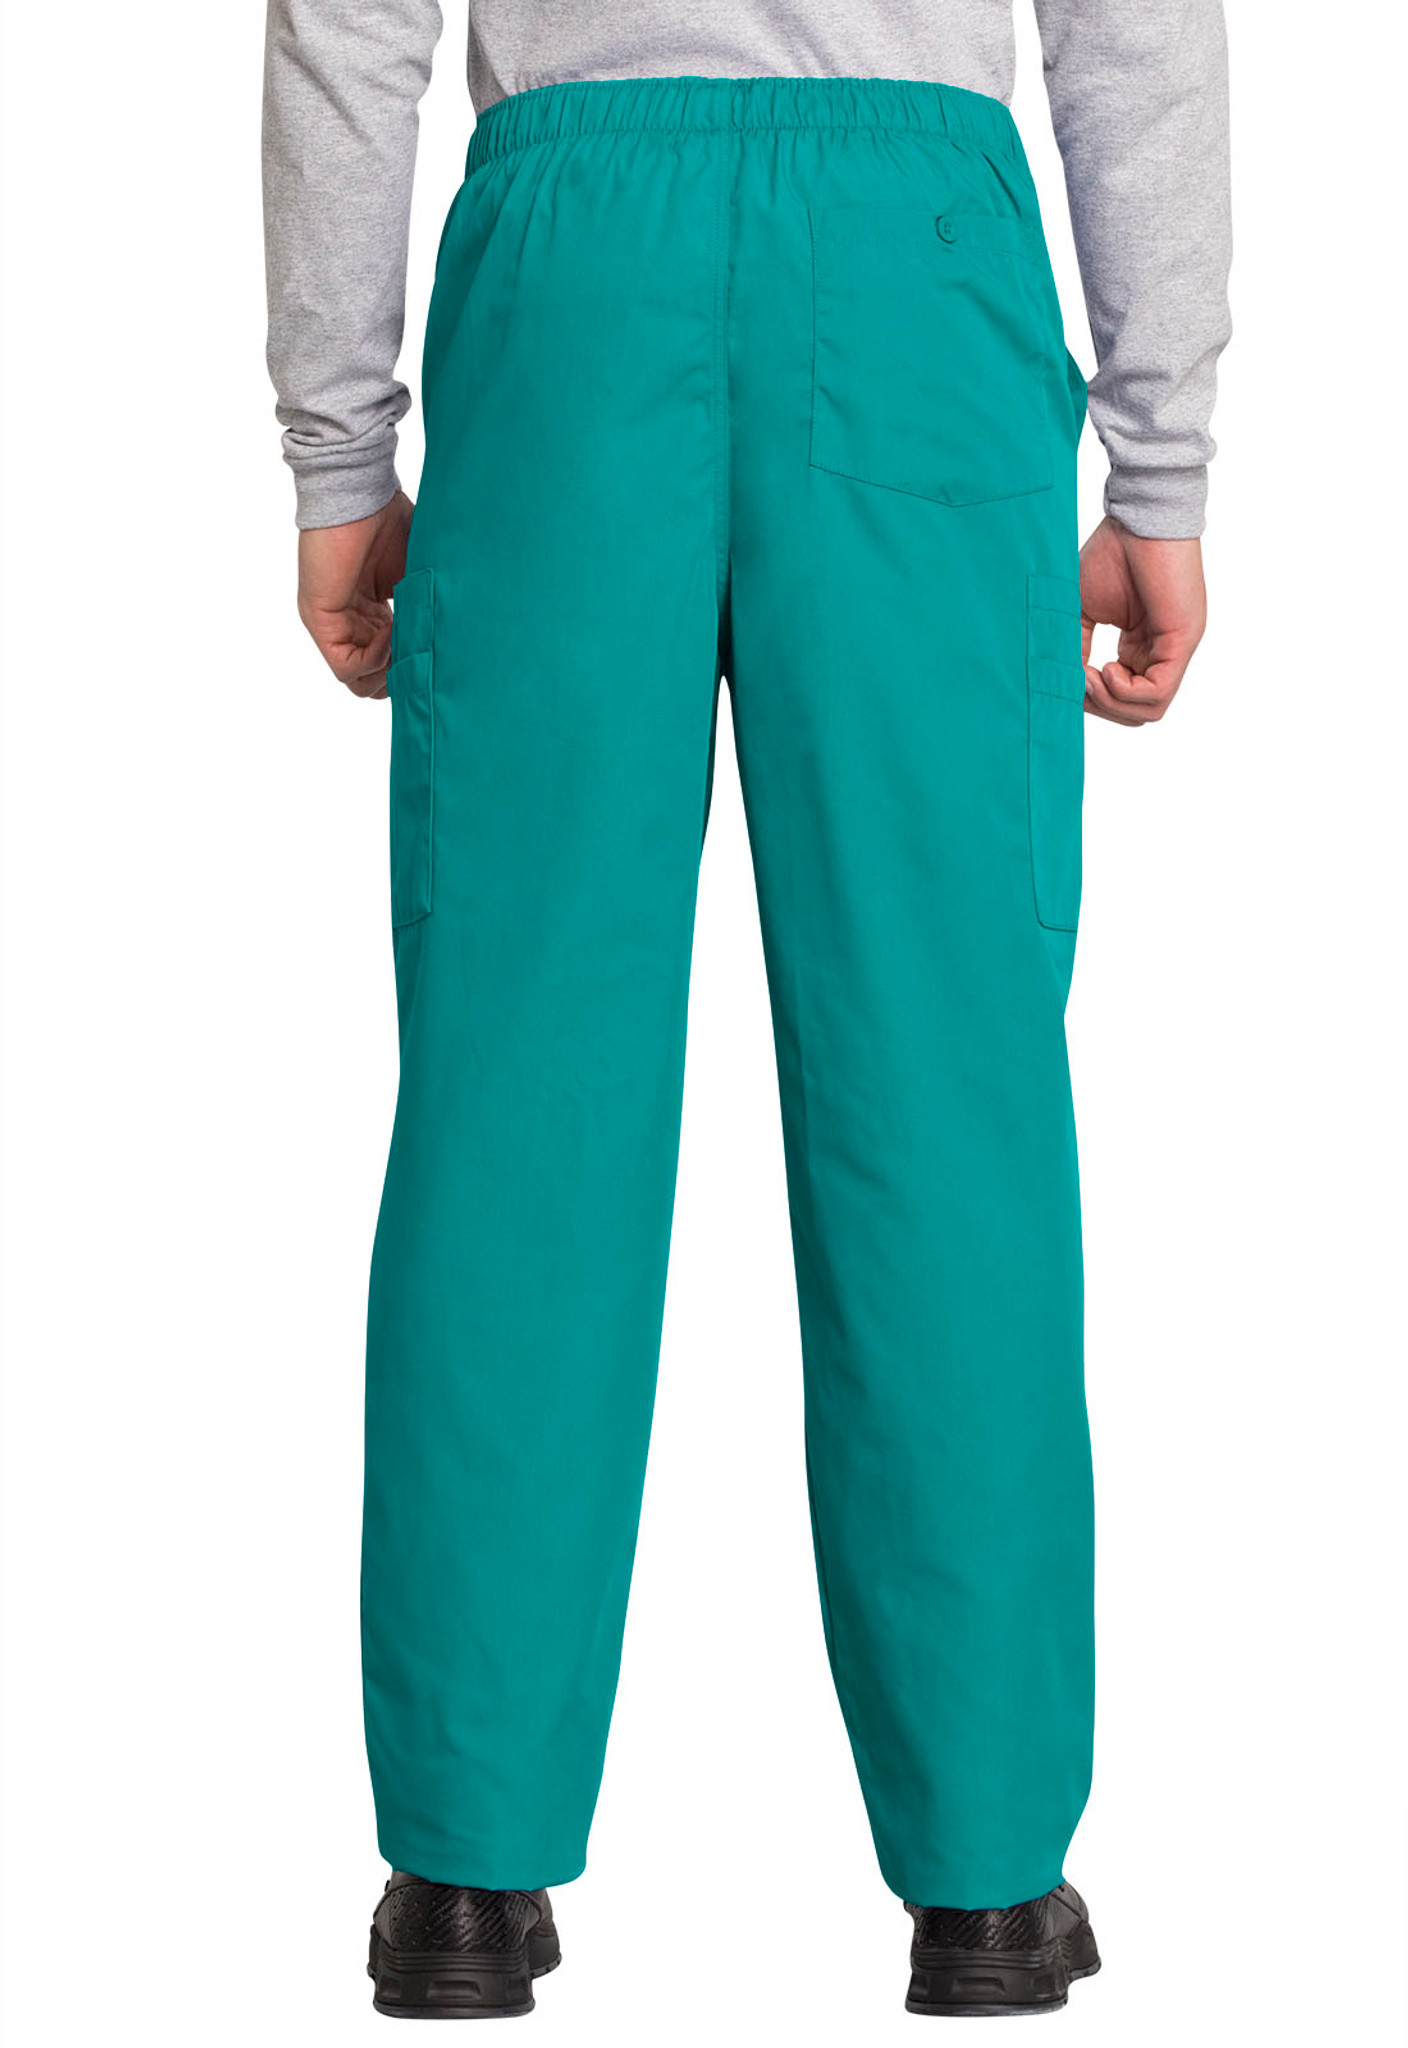 Cherokee Workwear Originals 4000 Men's Drawstring Cargo Scrub Pant